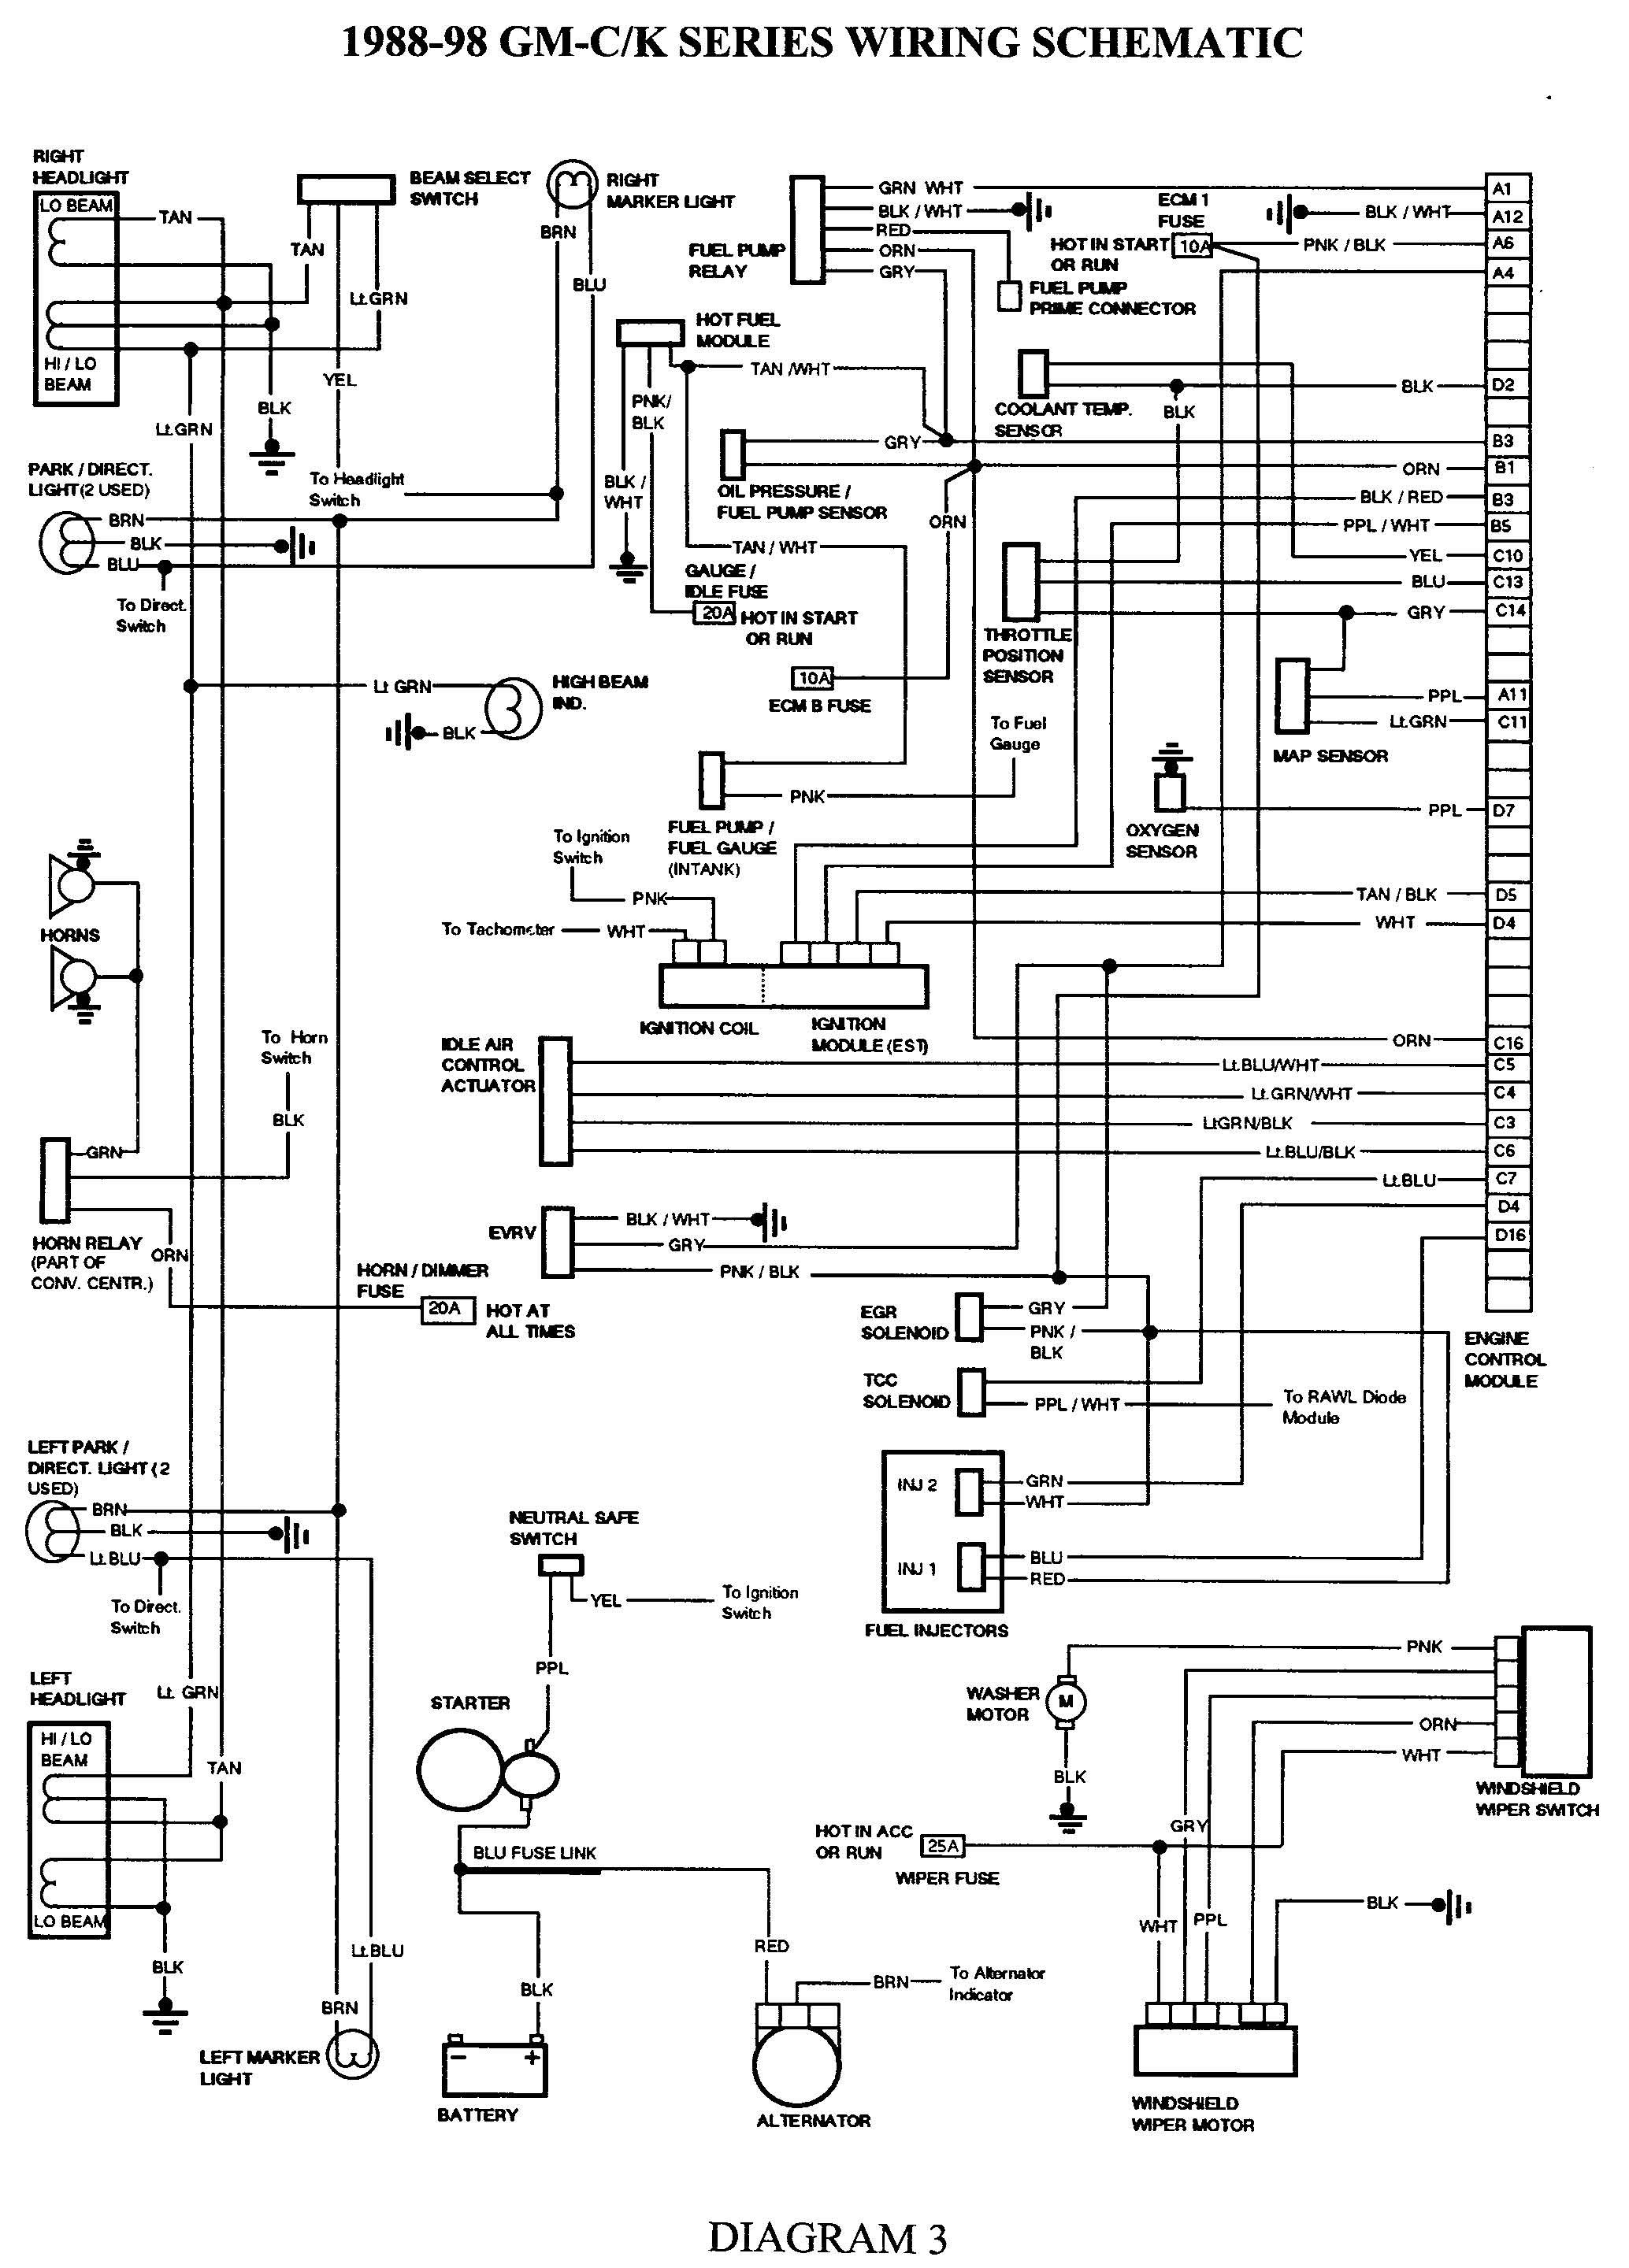 b2f2e5dbdc07dada83ef514f6d4ce3d4 gmc truck wiring diagrams on gm wiring harness diagram 88 98 kc 1988 chevy truck wiring diagrams at bayanpartner.co